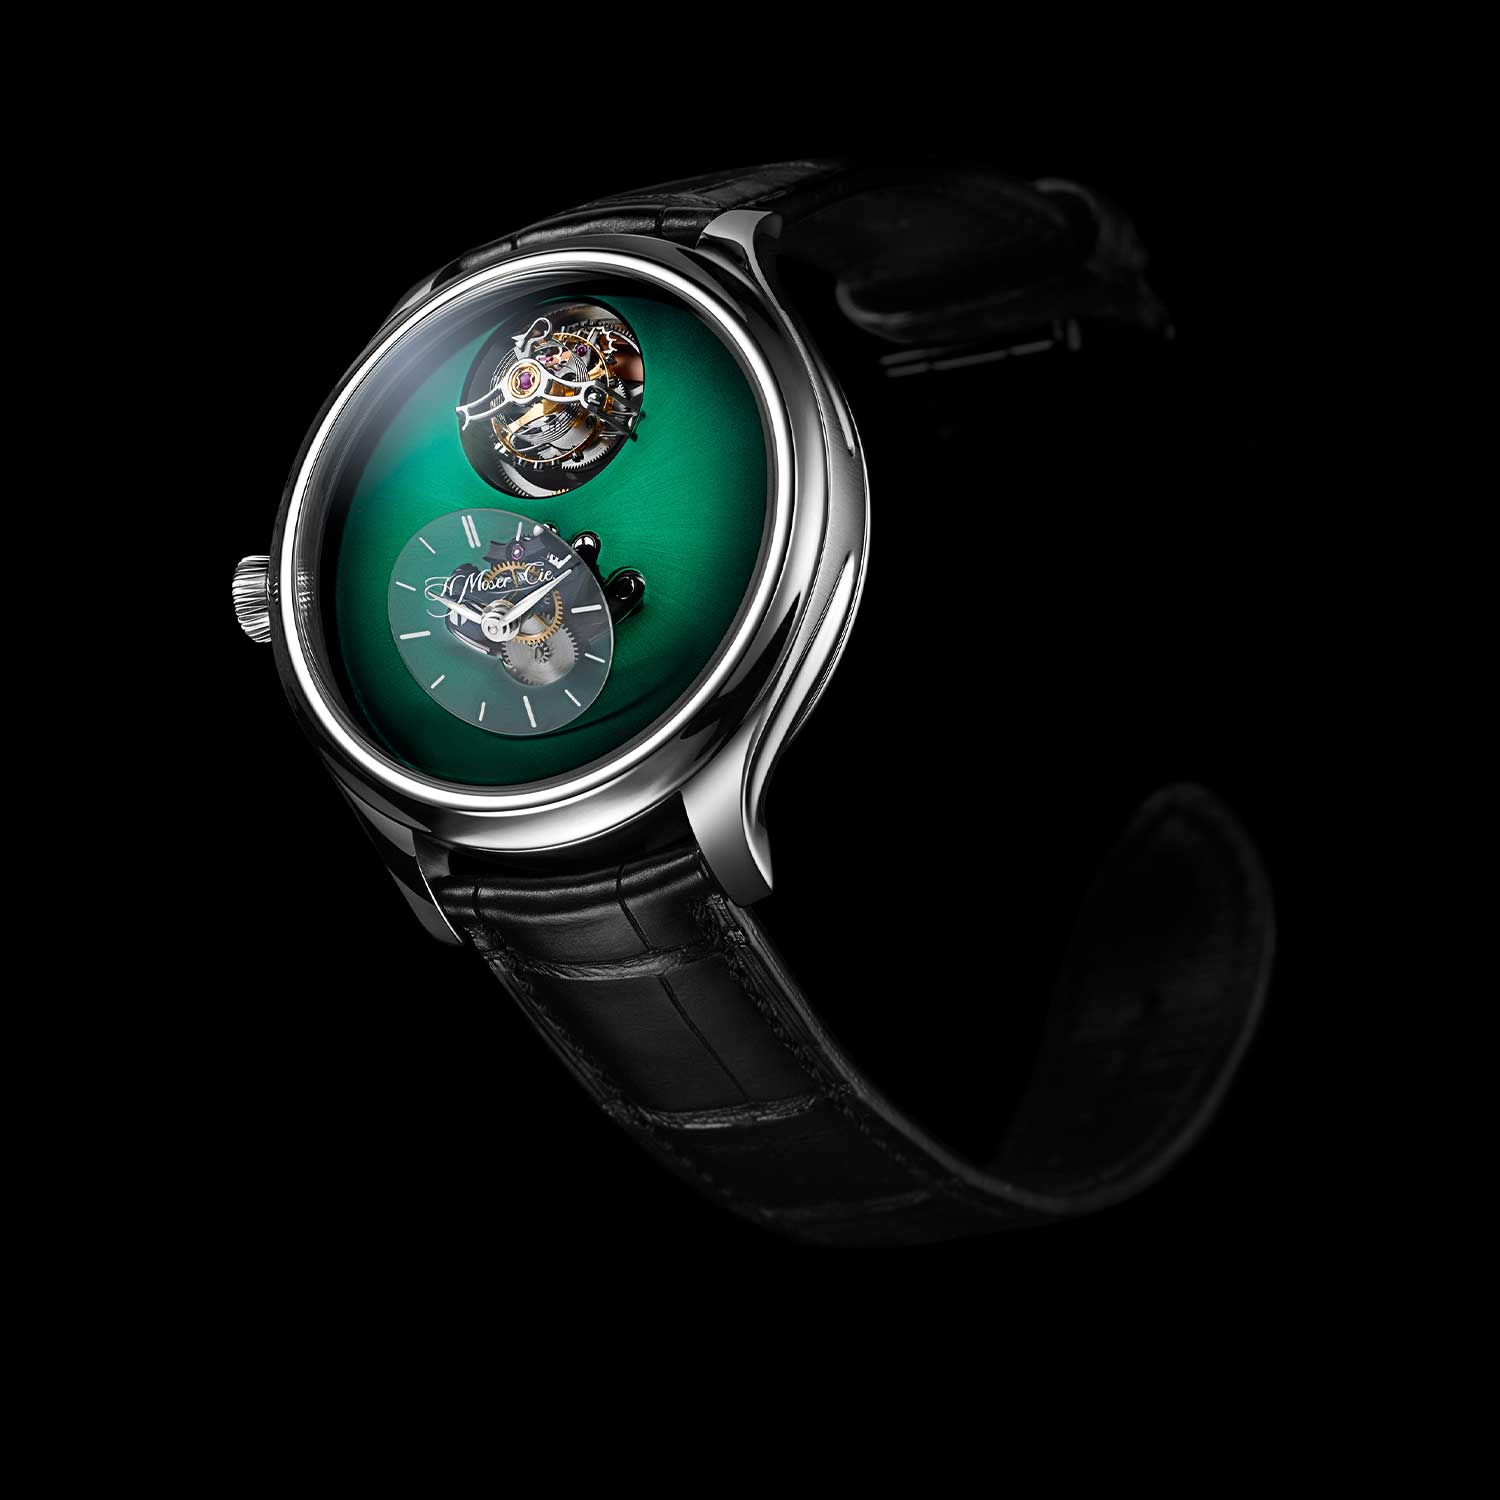 MB&F × H. Moser Endeavour Cylindrical Tourbillon with the Cosmic Green dial